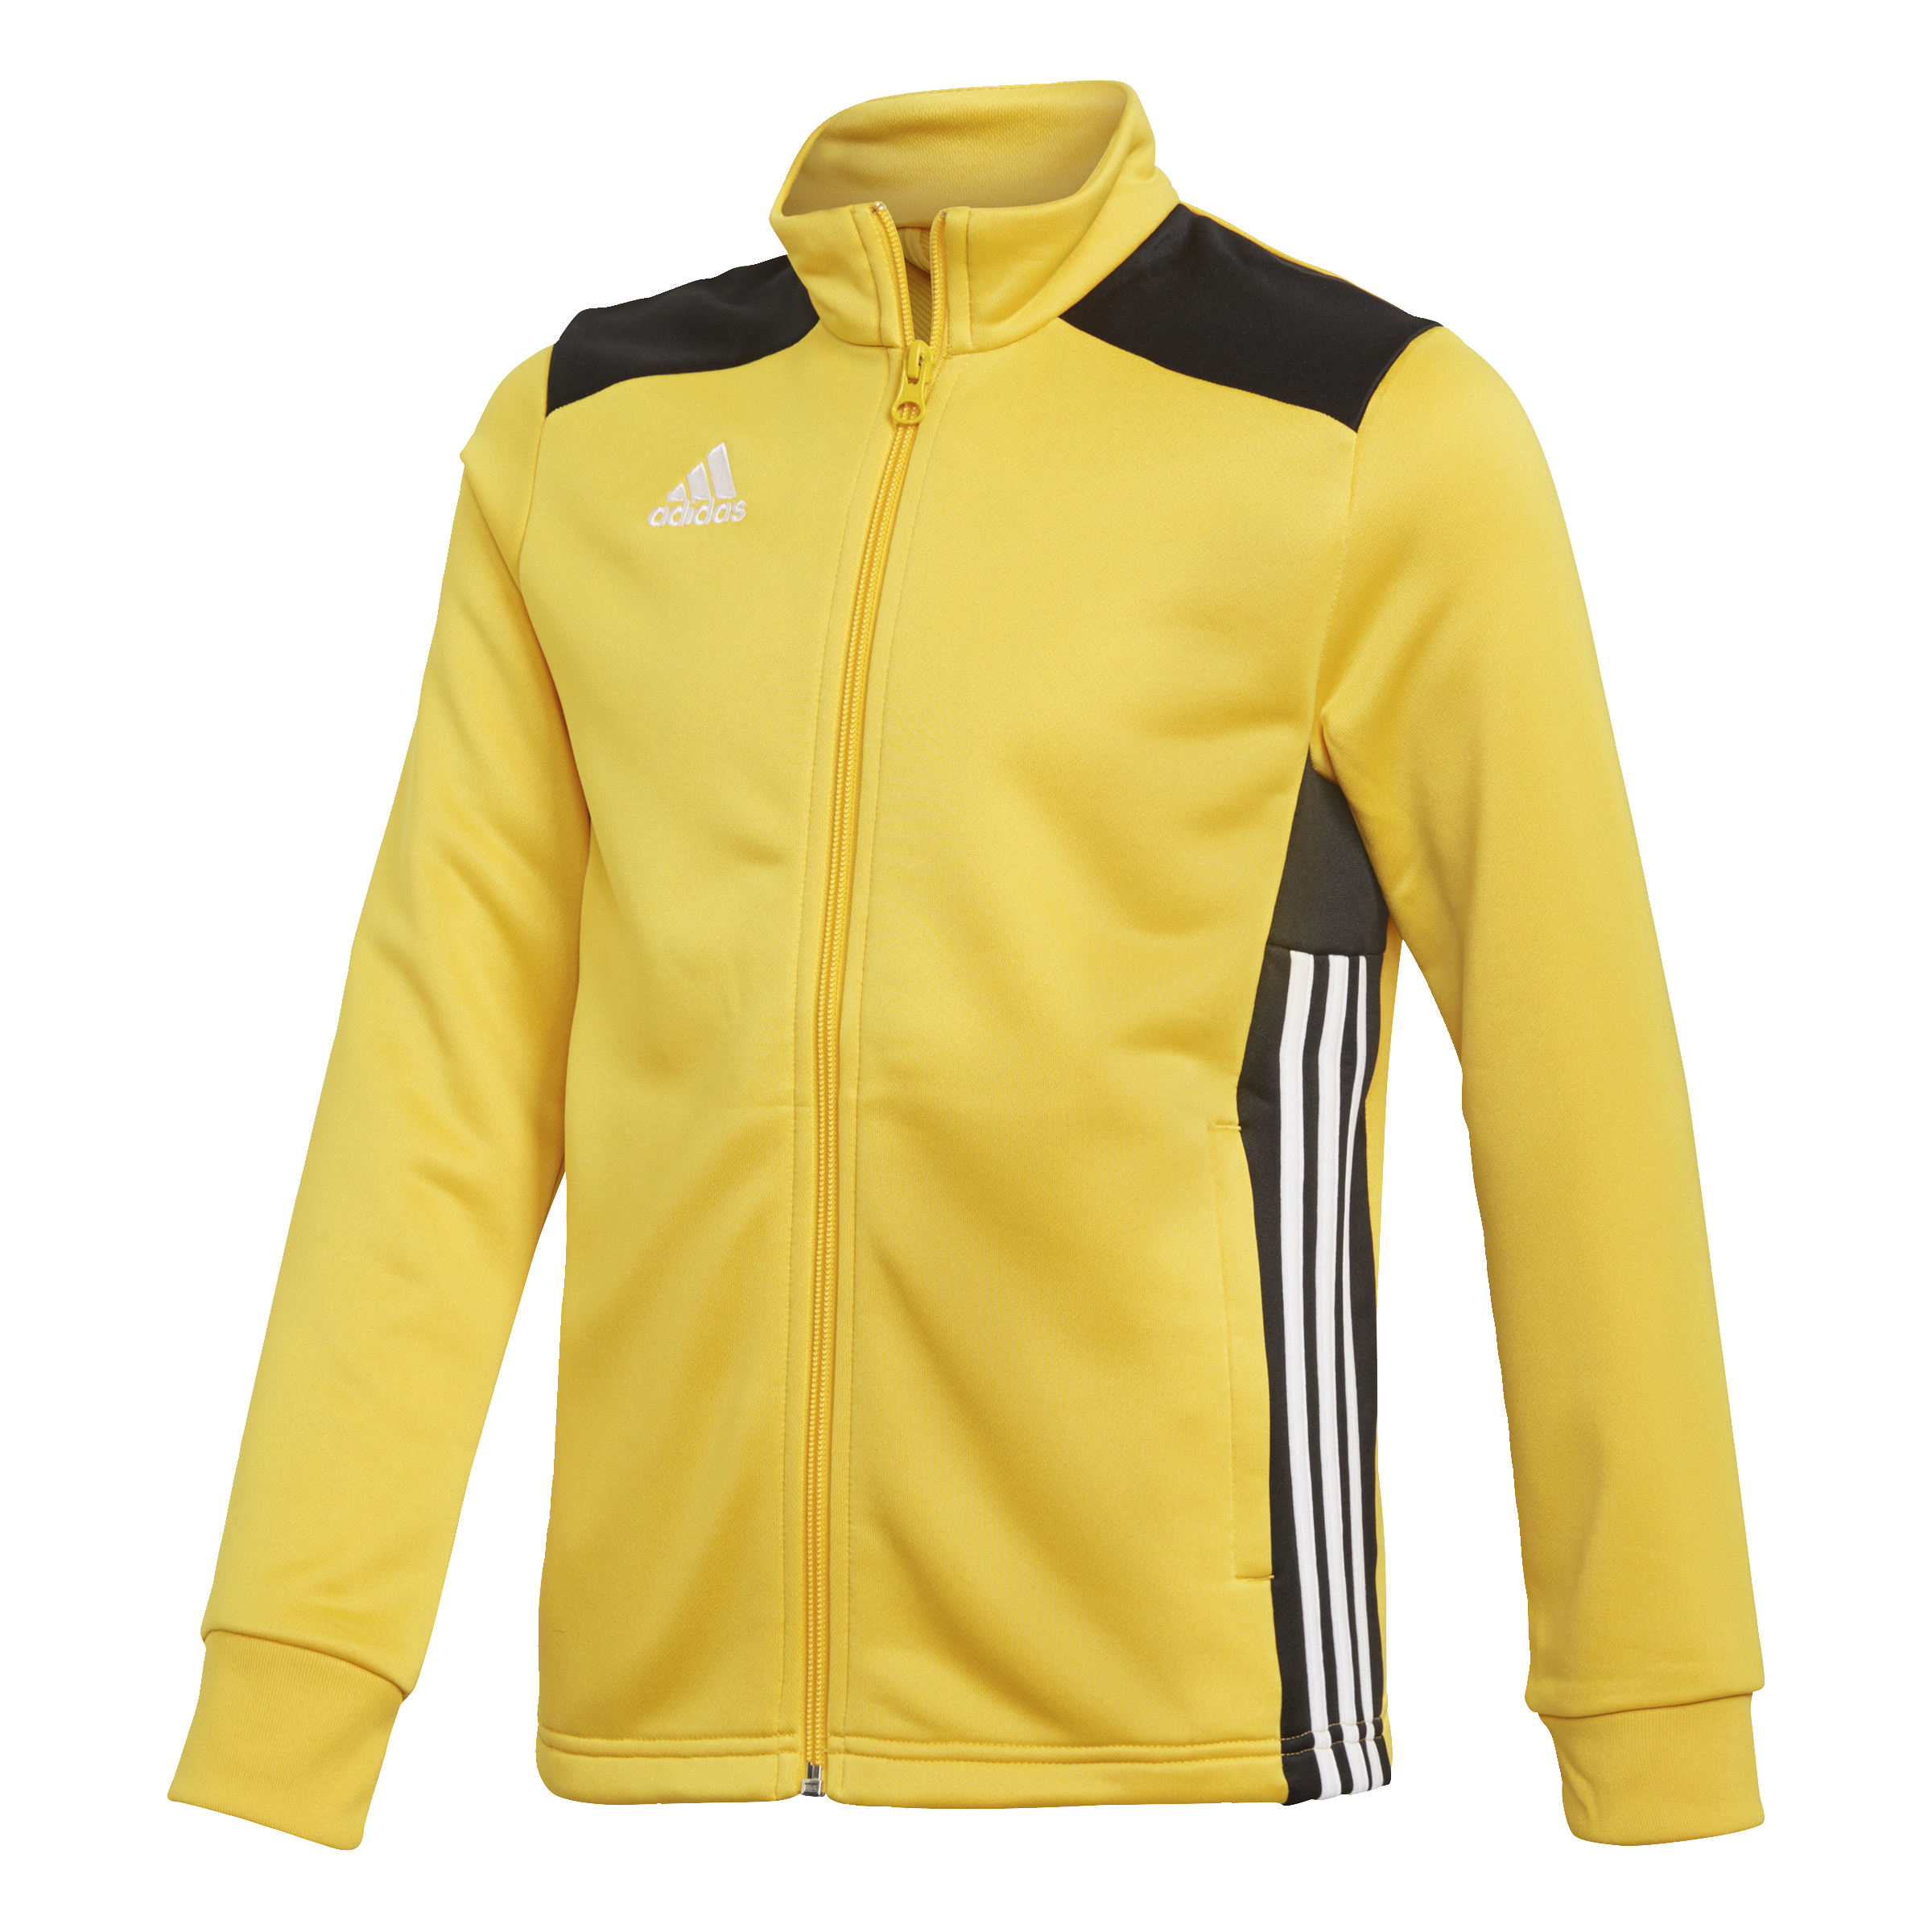 Regista 18 Jacket | adidas LOCKER ROOM